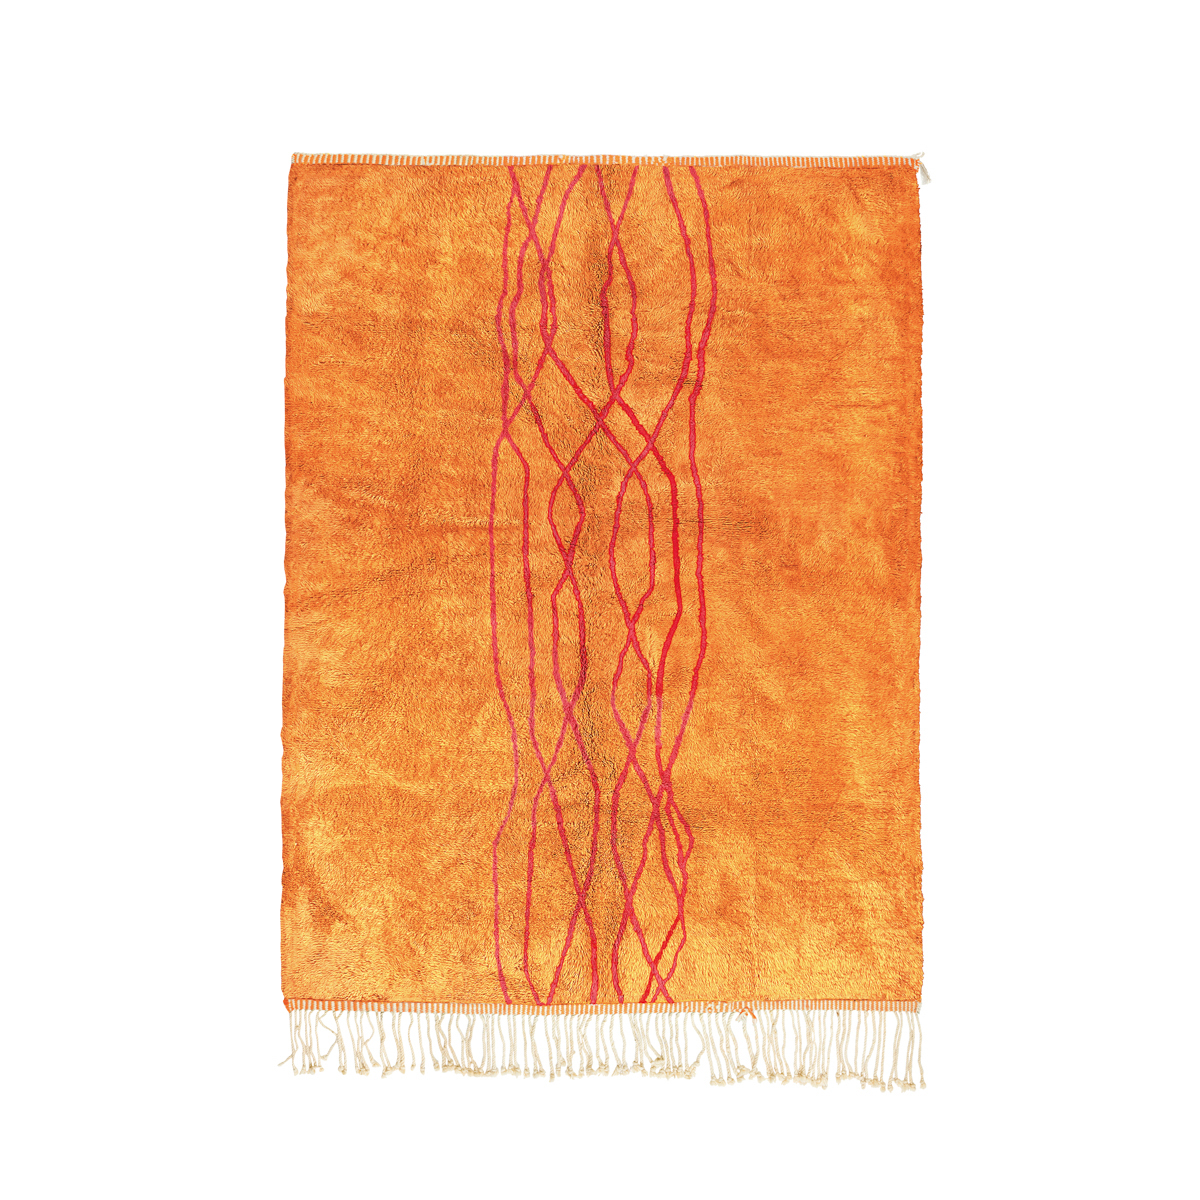 Flow Rug in Tangerine Orange and Scarlet Red